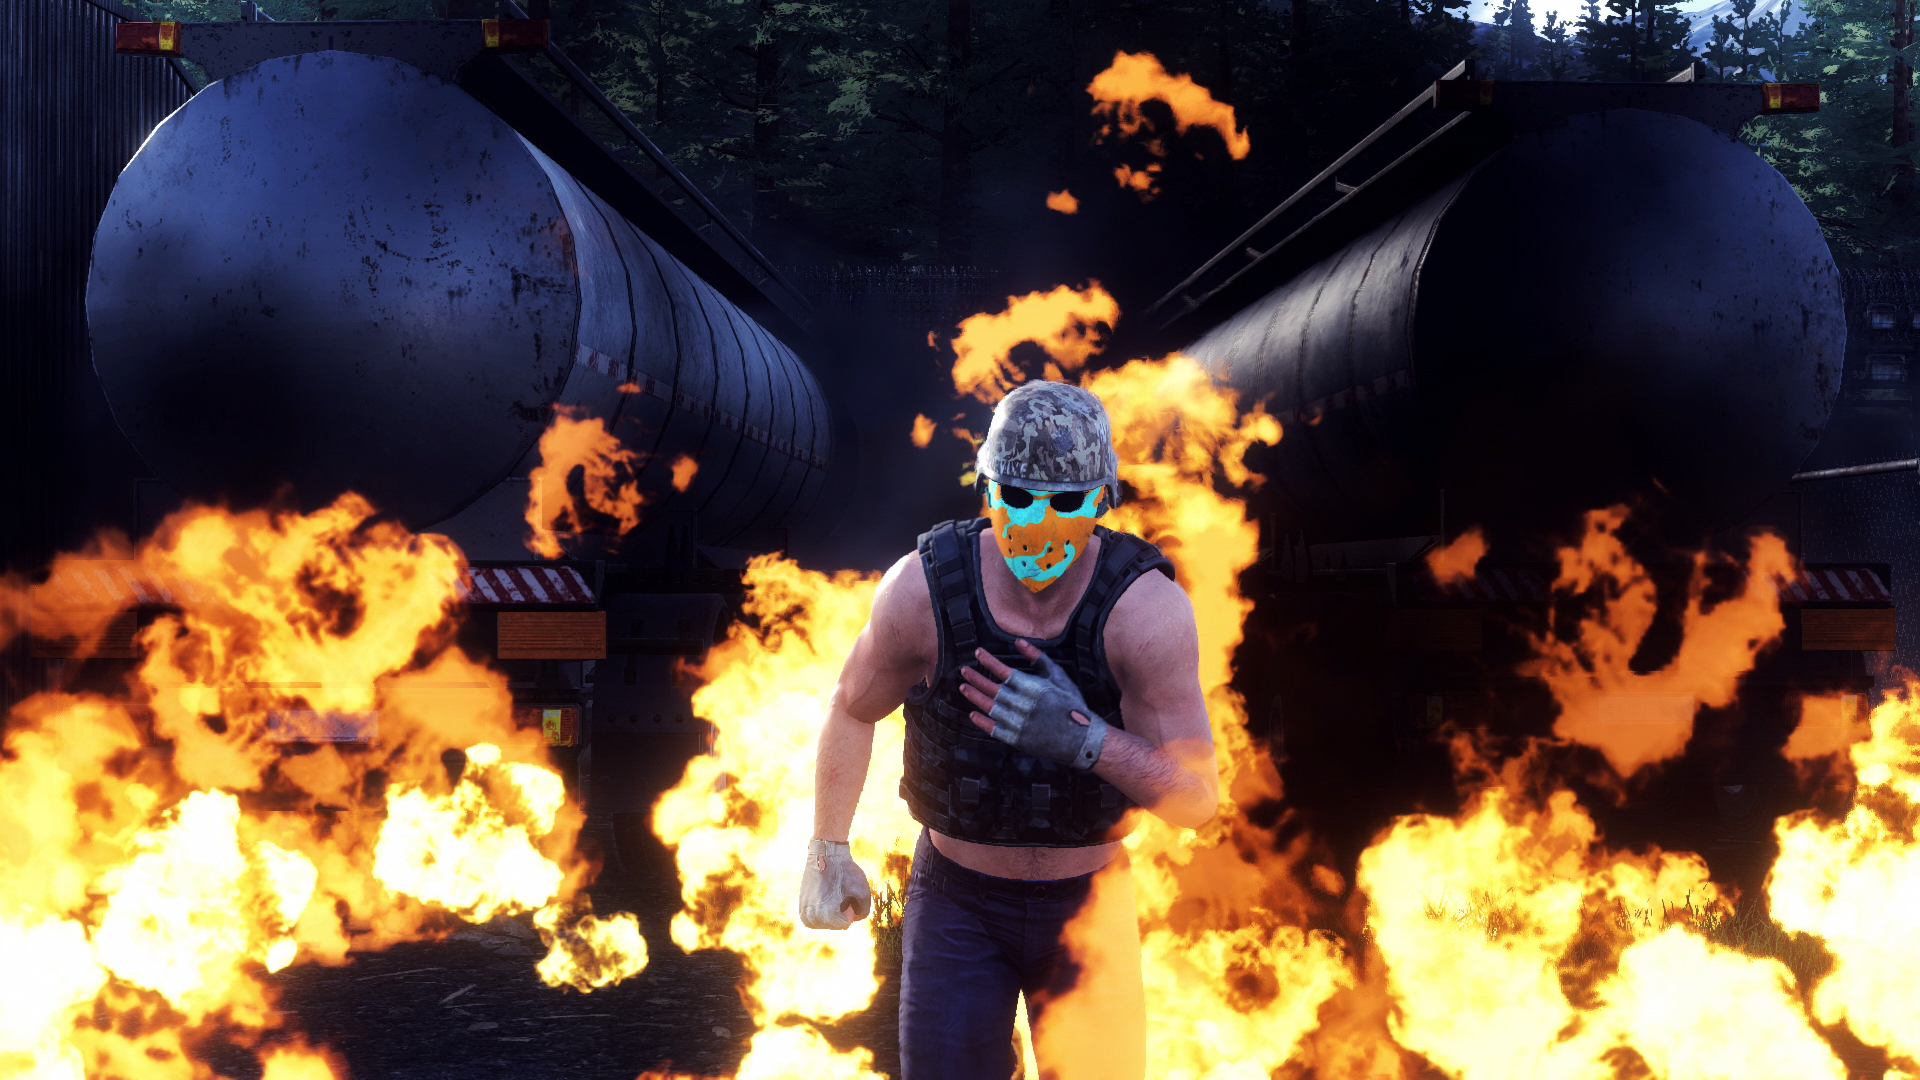 h1z1 to launch free